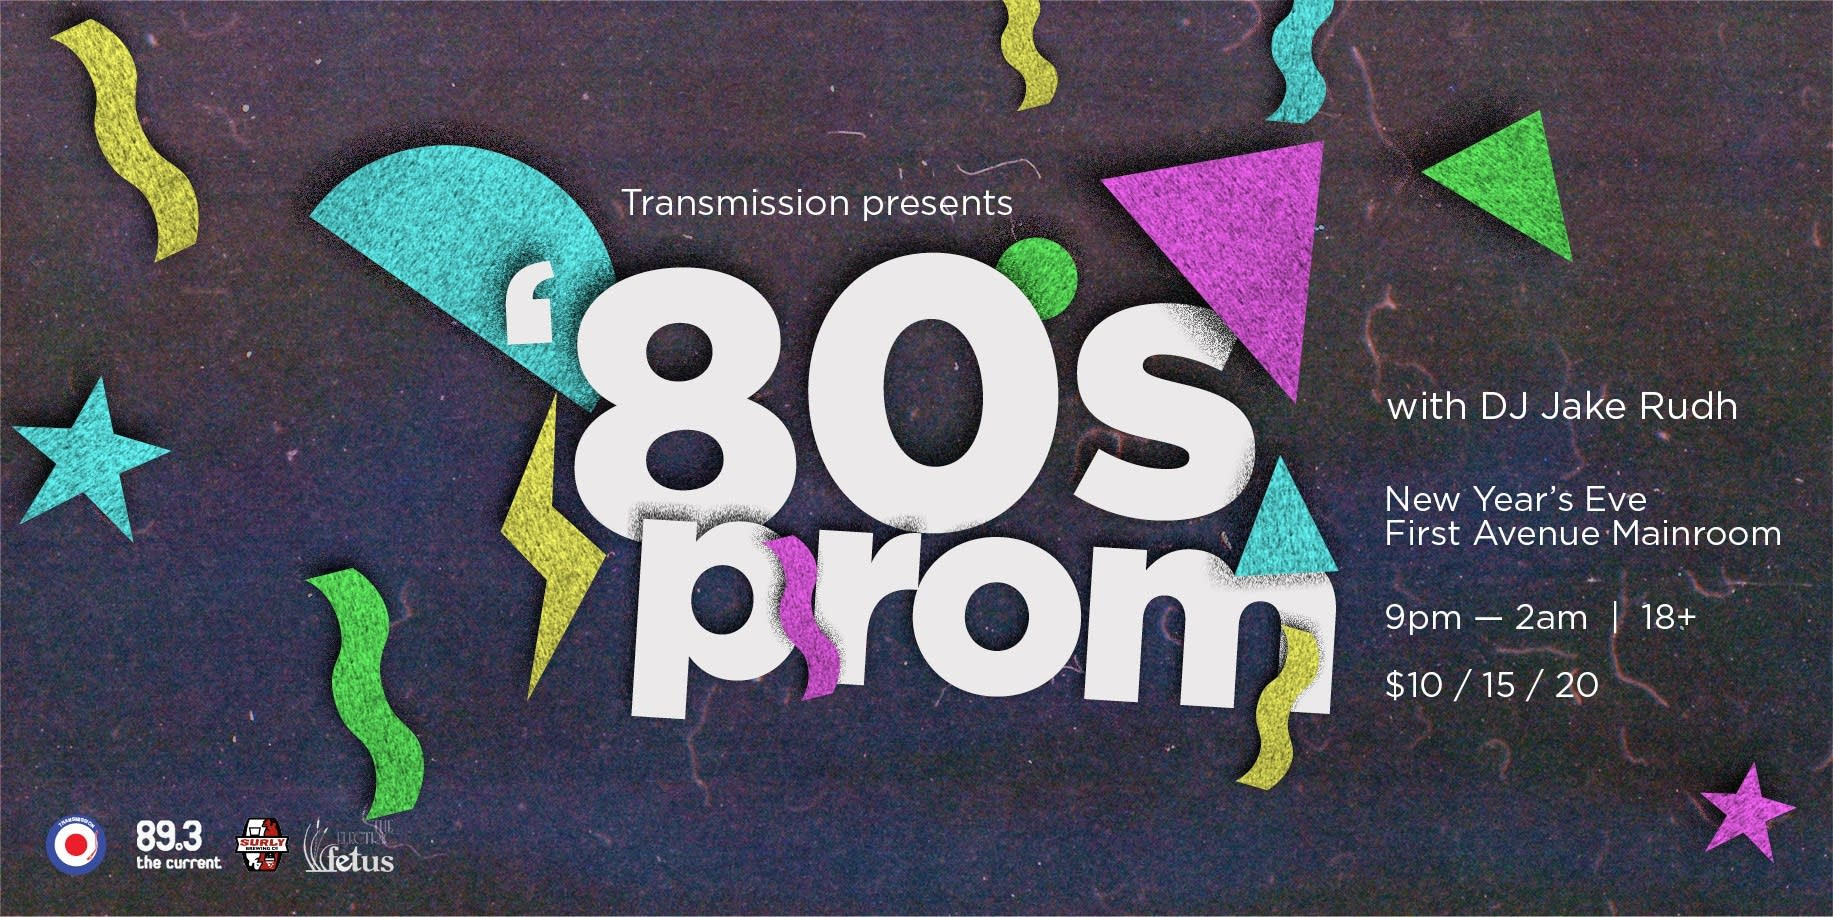 Transmission's '80s Prom New Years Eve